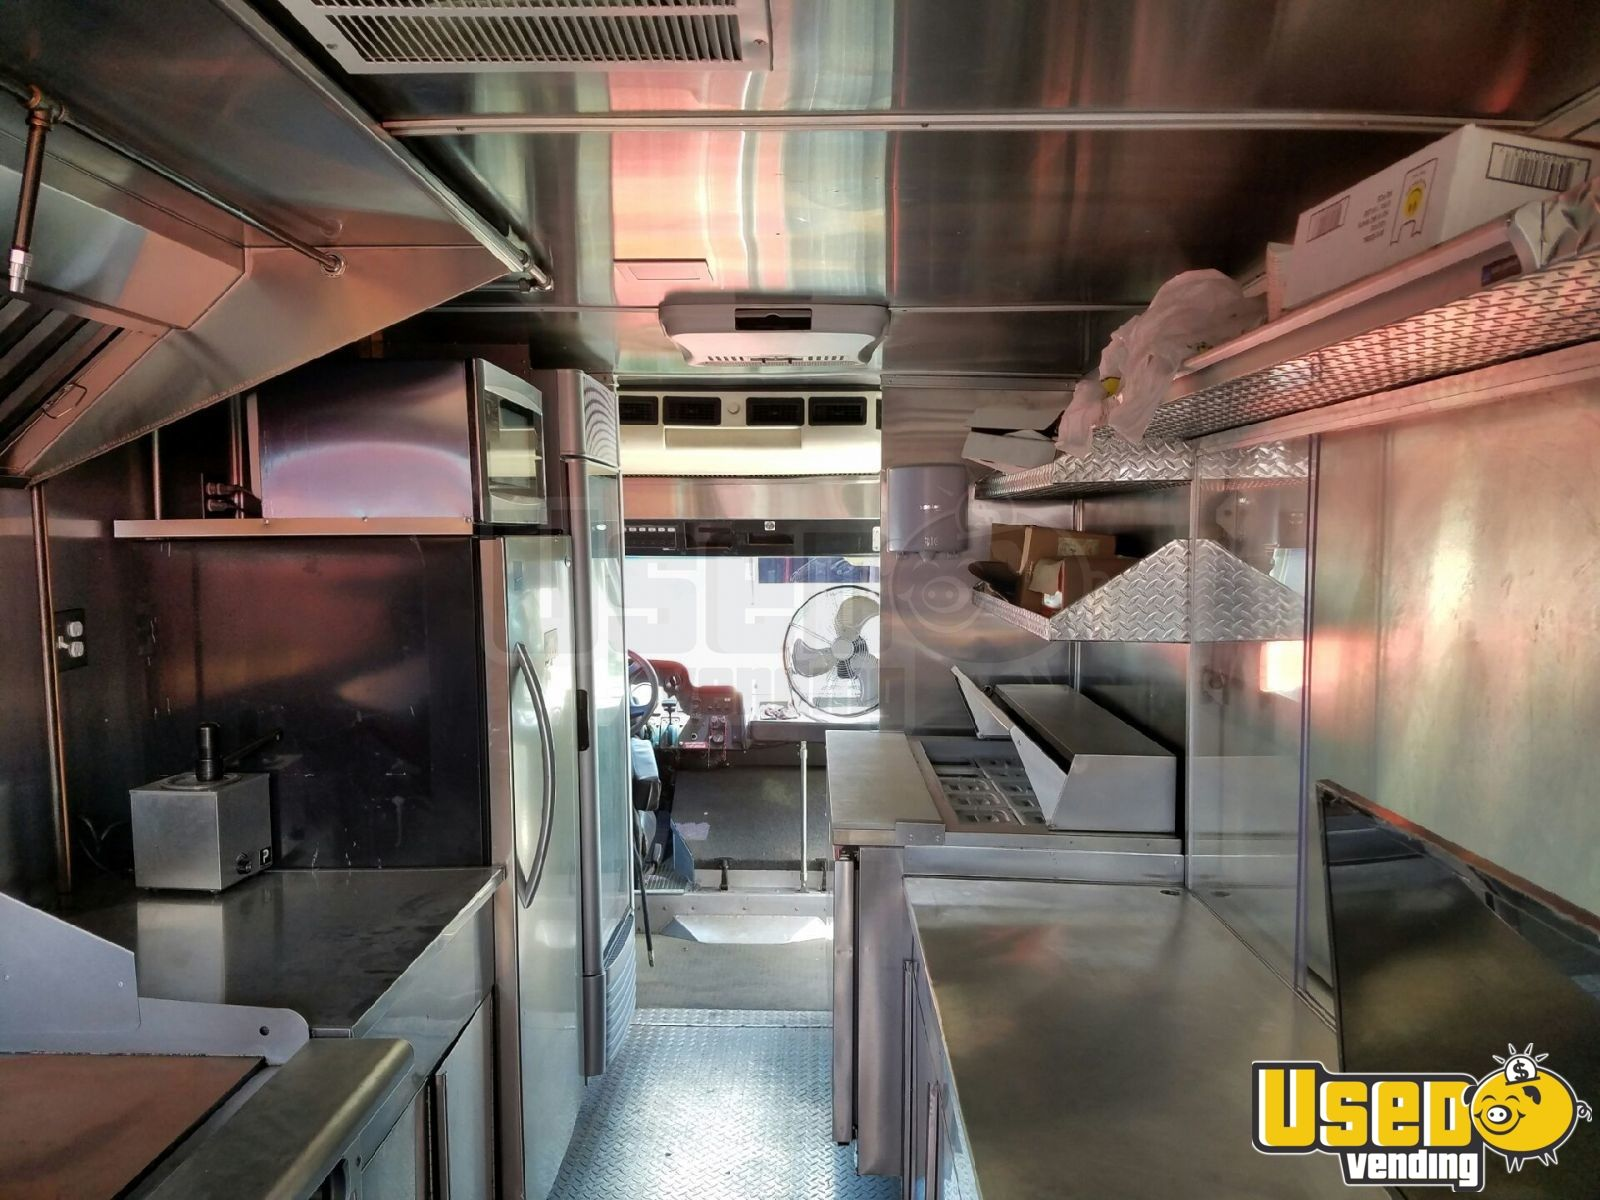 2004 Freightliner Mwv All-purpose Food Truck Deep Freezer Florida for Sale - 6